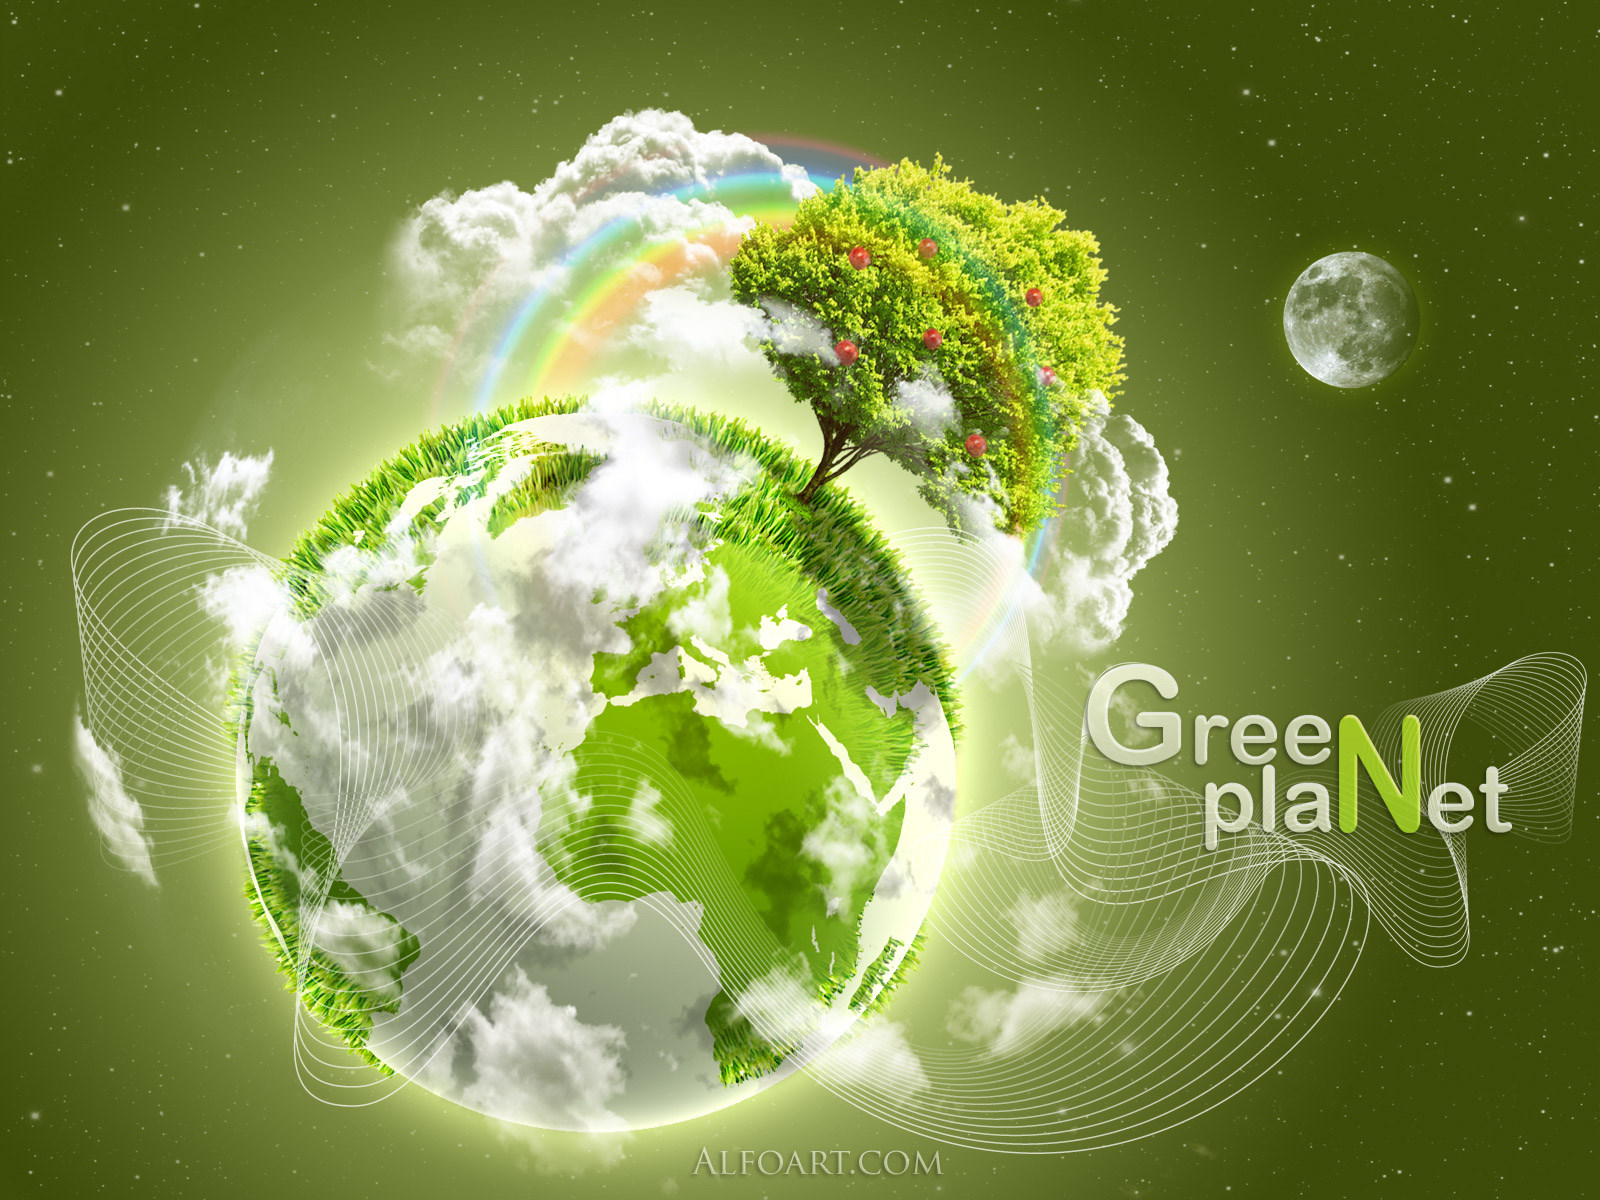 http://4.bp.blogspot.com/-OFHa49coAlE/T3RZm0m6CUI/AAAAAAAAIY8/6kg5ENt8c3E/s1600/earthday_wallpapers_quotes_images_gogreen_environmental(www.picturespo